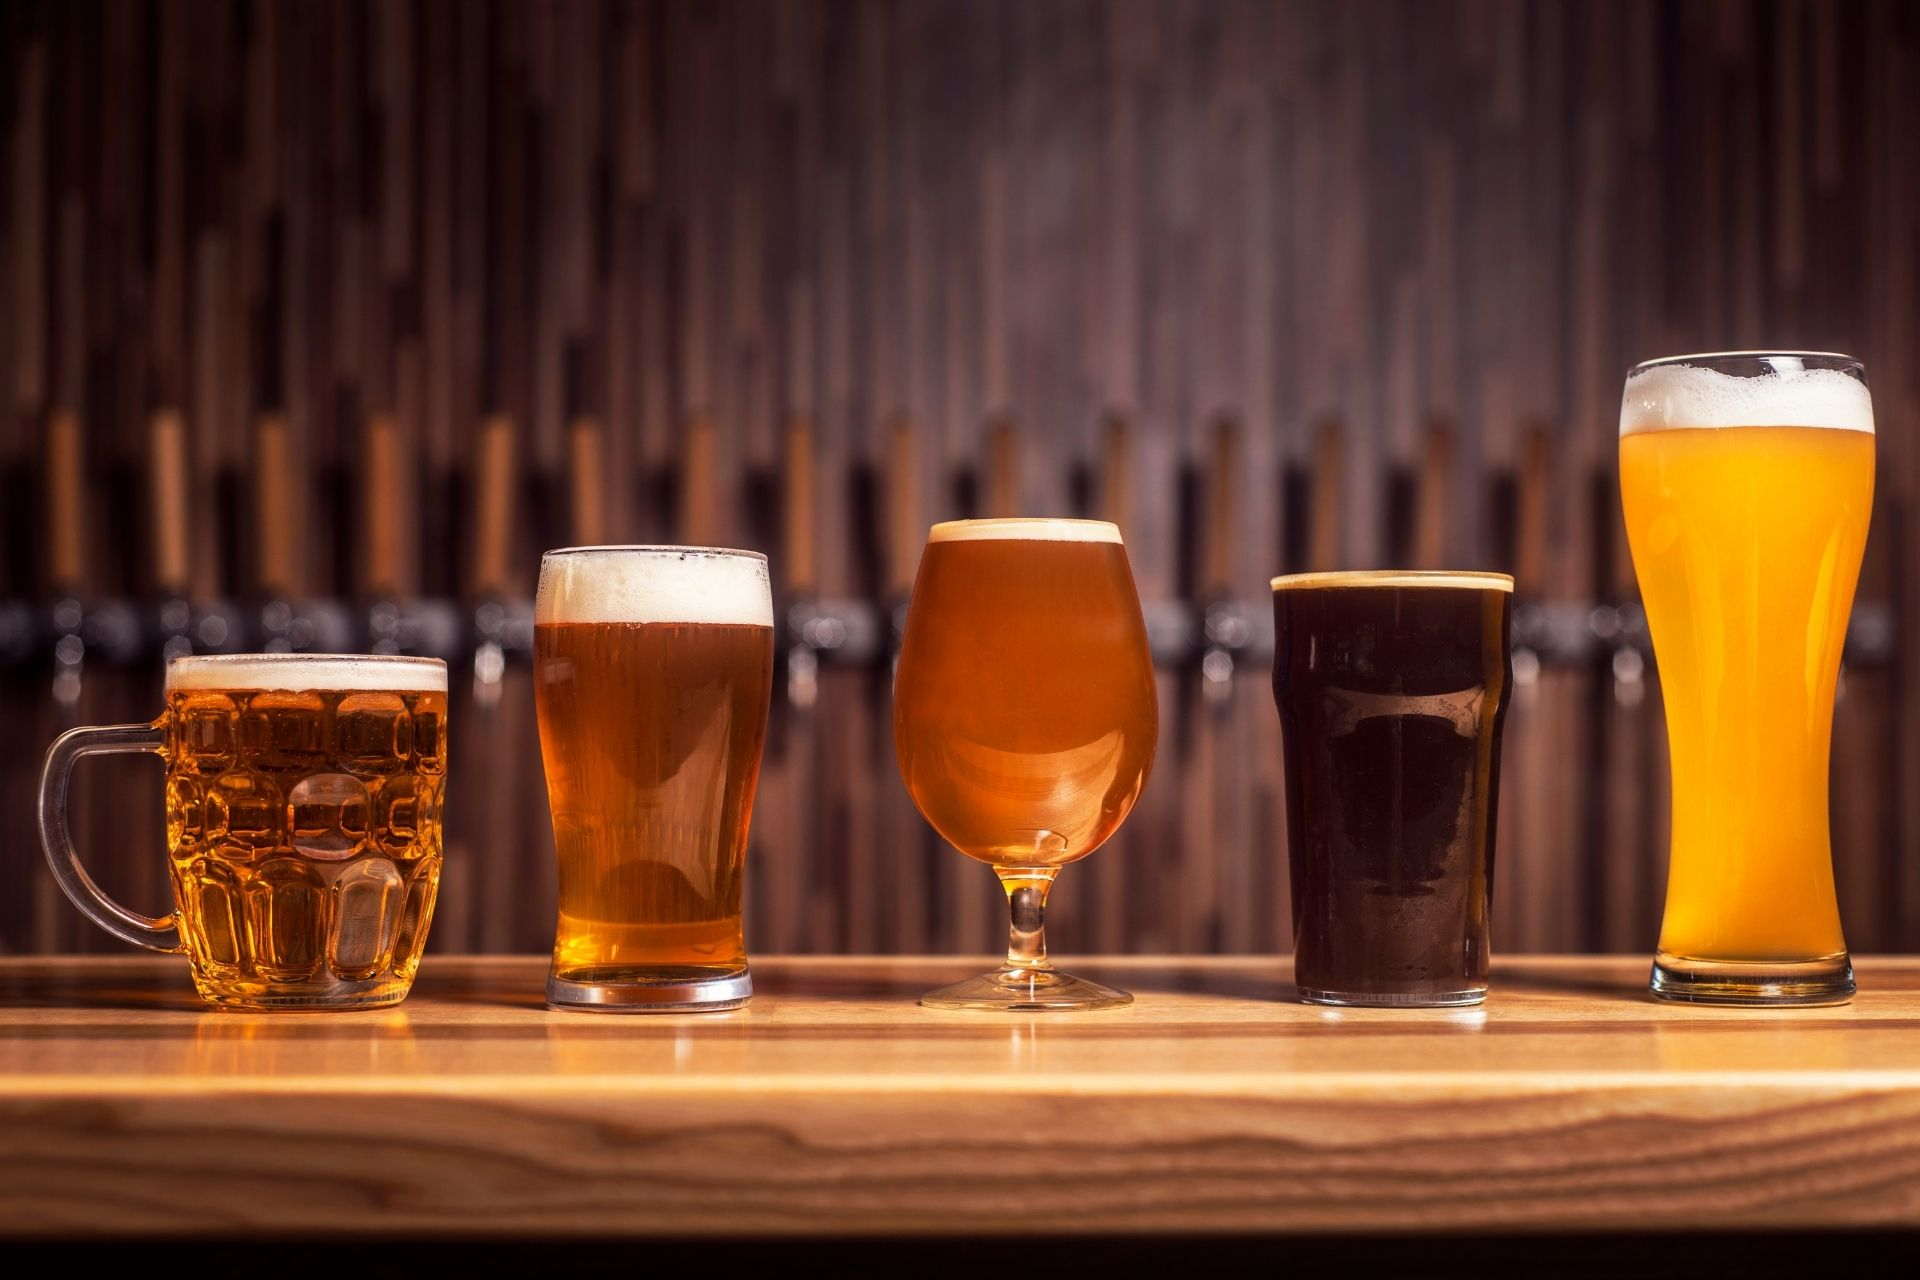 7 Highest Alcohol Content Beers